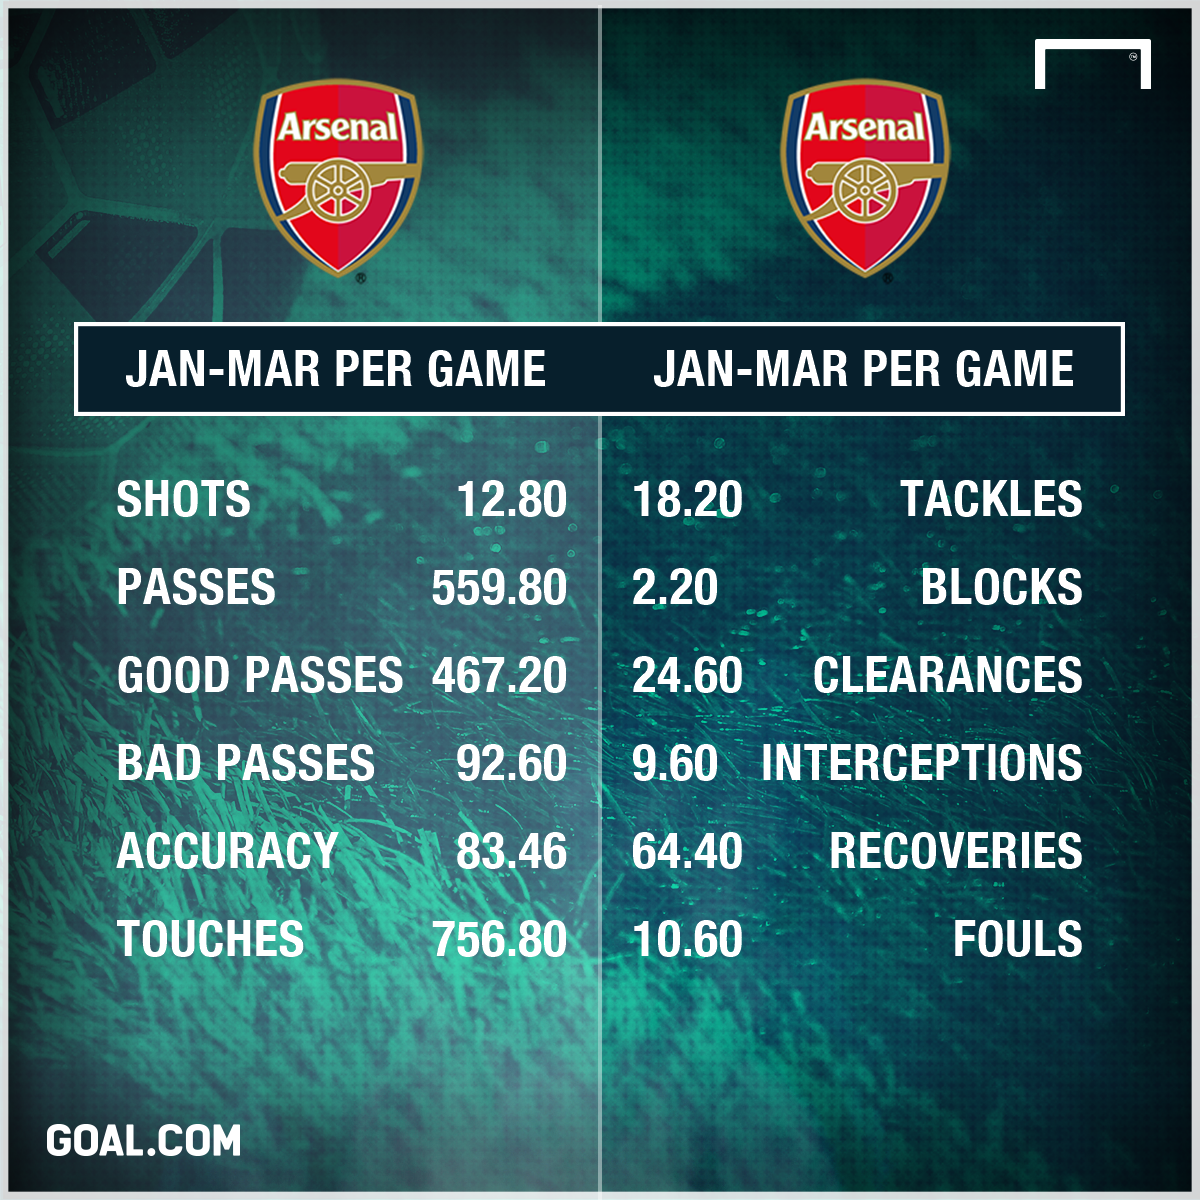 Arsenal per game Jan Mar